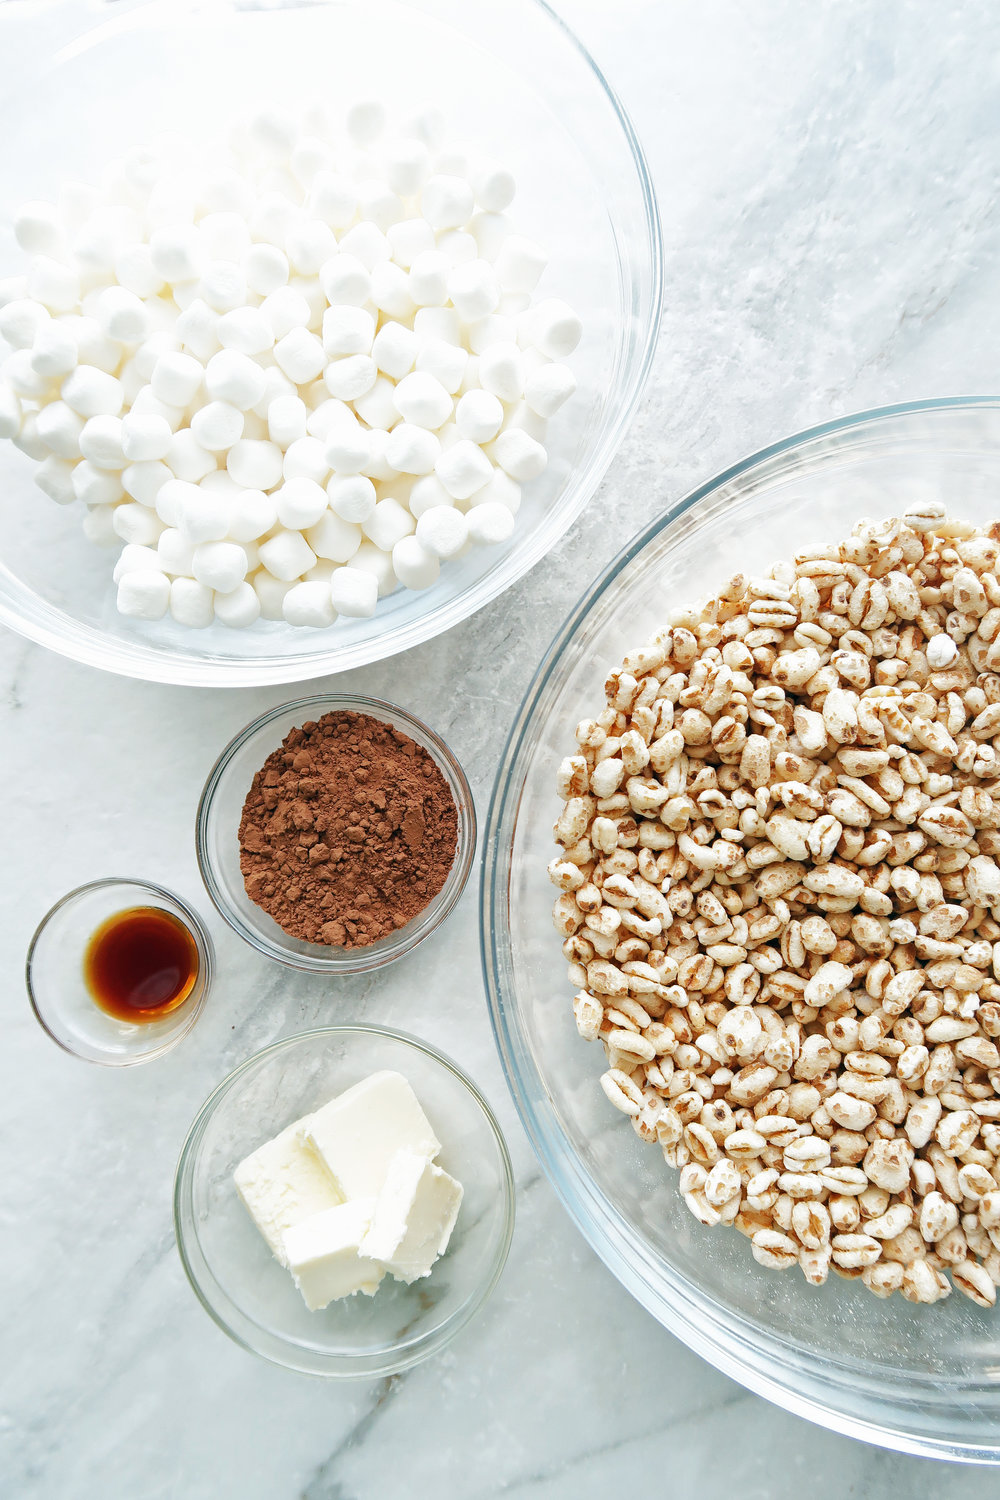 Bowls of puffed wheat, marshmallows, cocoa powder, butter, and vanilla extract.